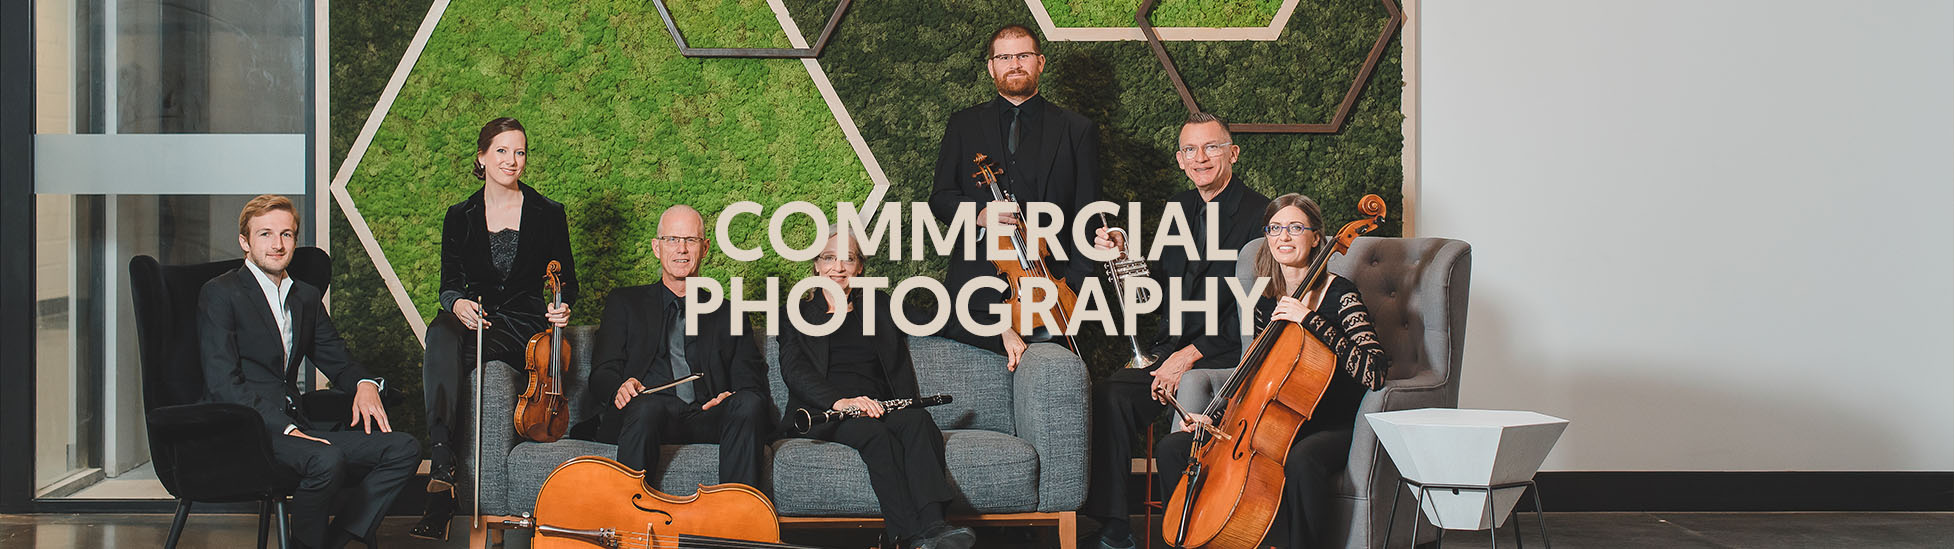 Kitchener-Waterloo Symphony Orchestra Commercial Photography by Ben Lariviere